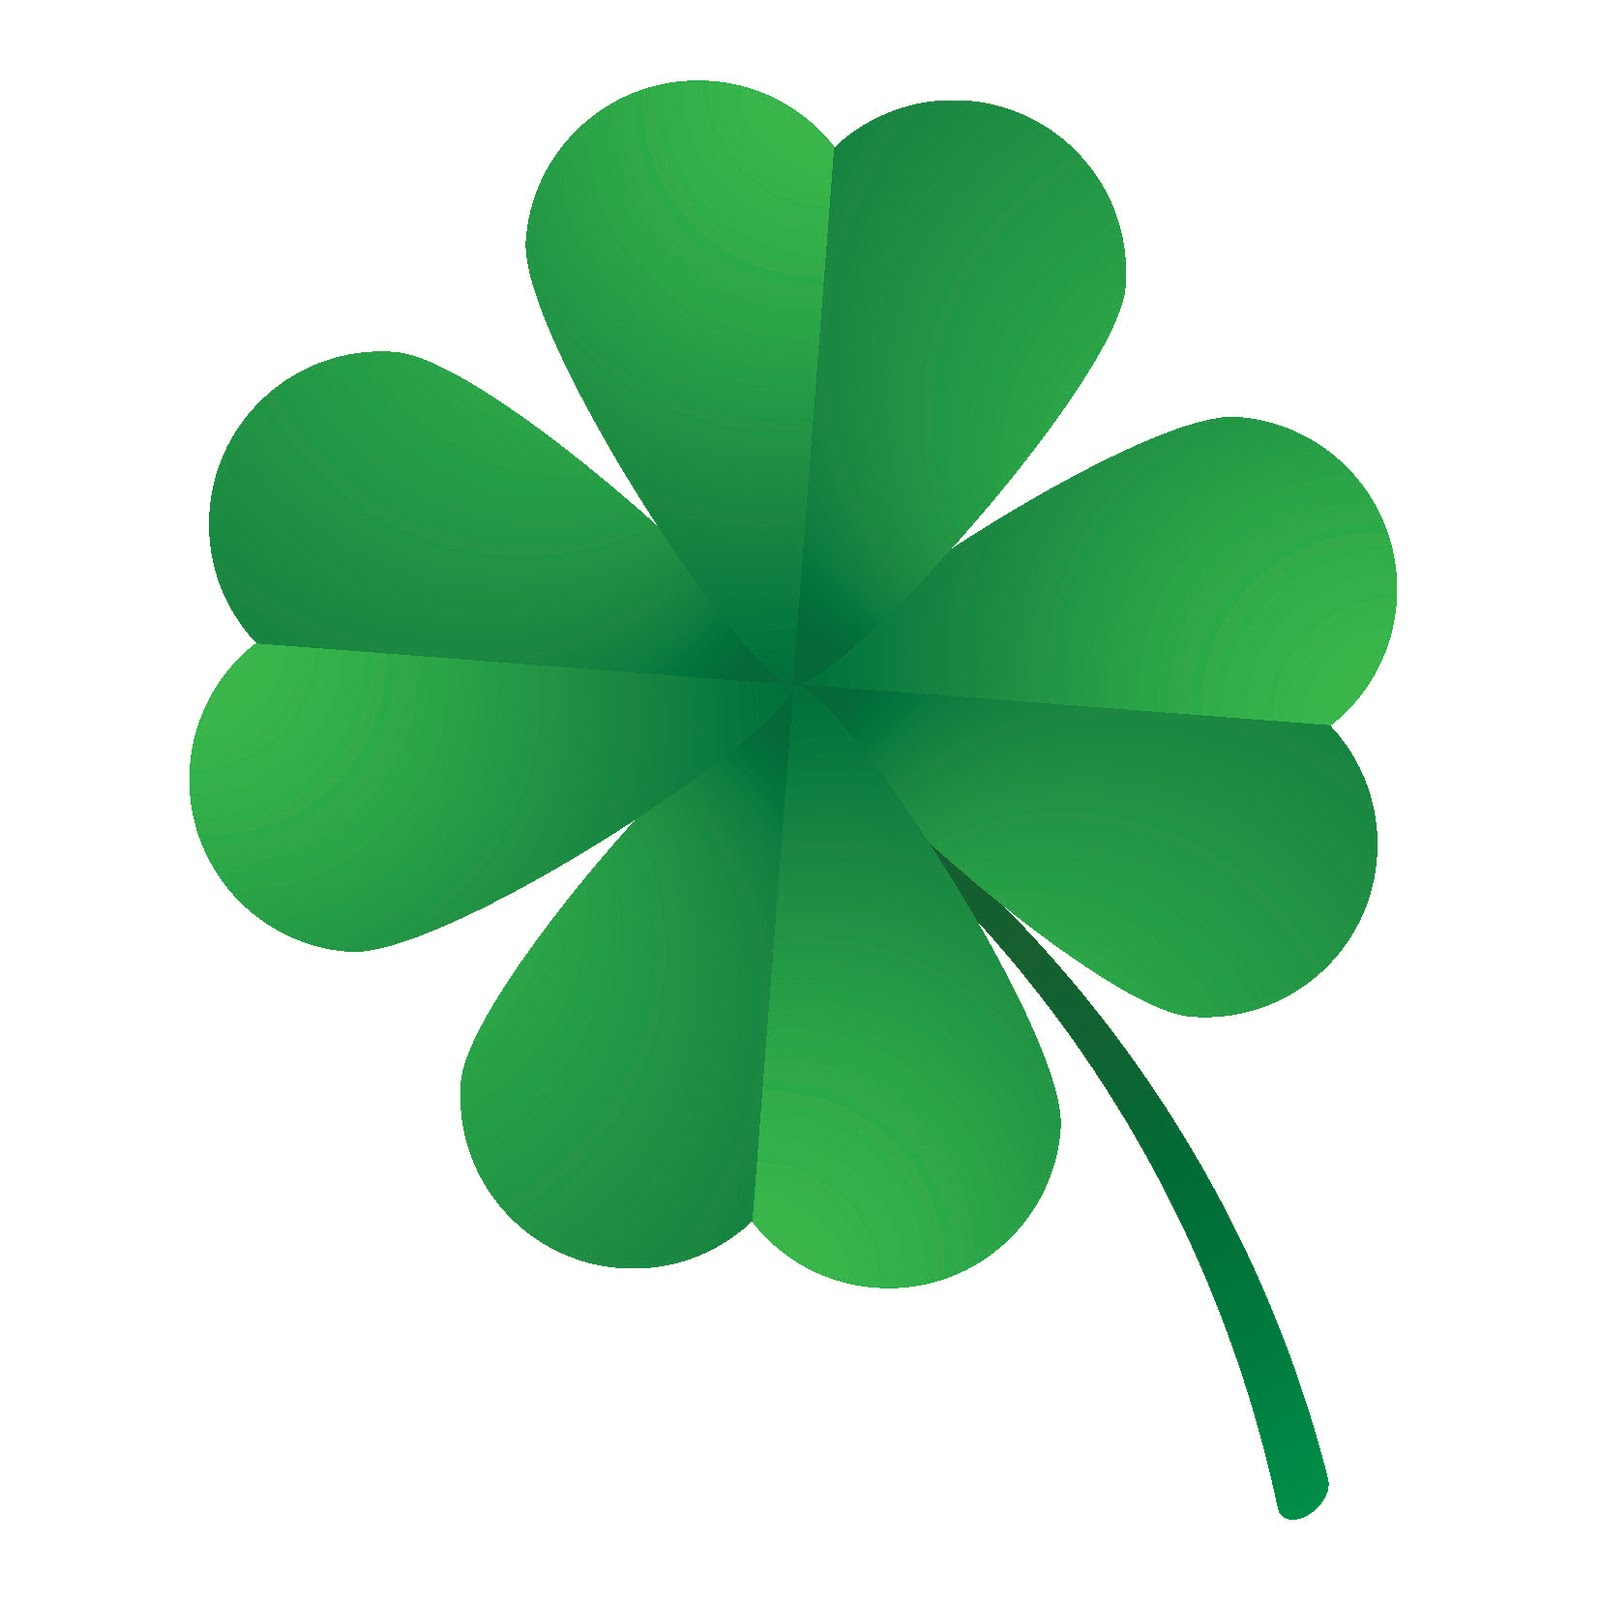 1600x1600 4 Leaf Clover Four Leaf Clover Clipart 2